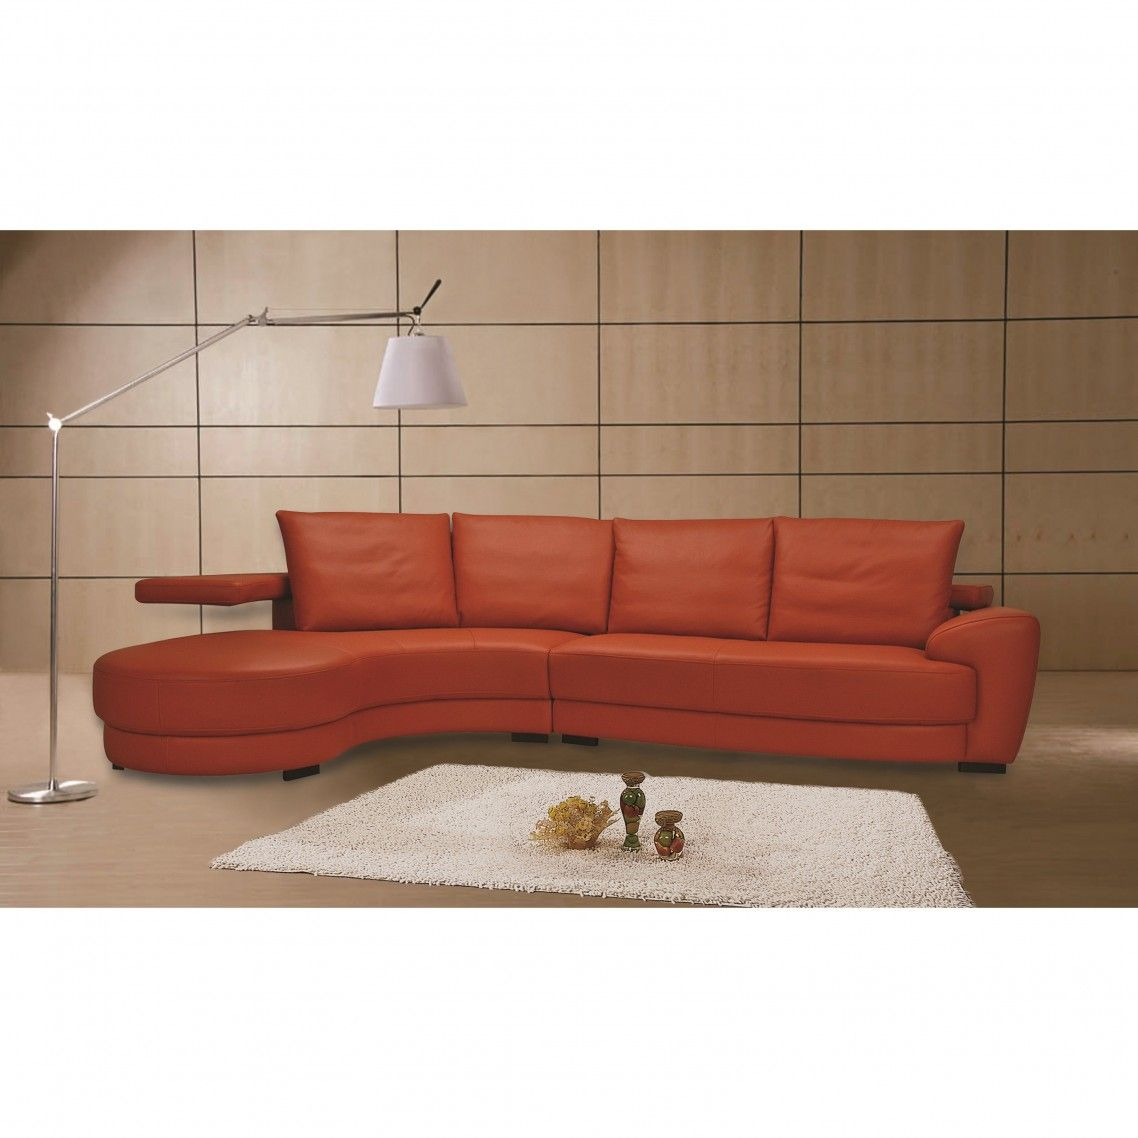 Good Looking Orange Leather Sofas You Must Have : Gorgeous Orange Leather  Sofa With White